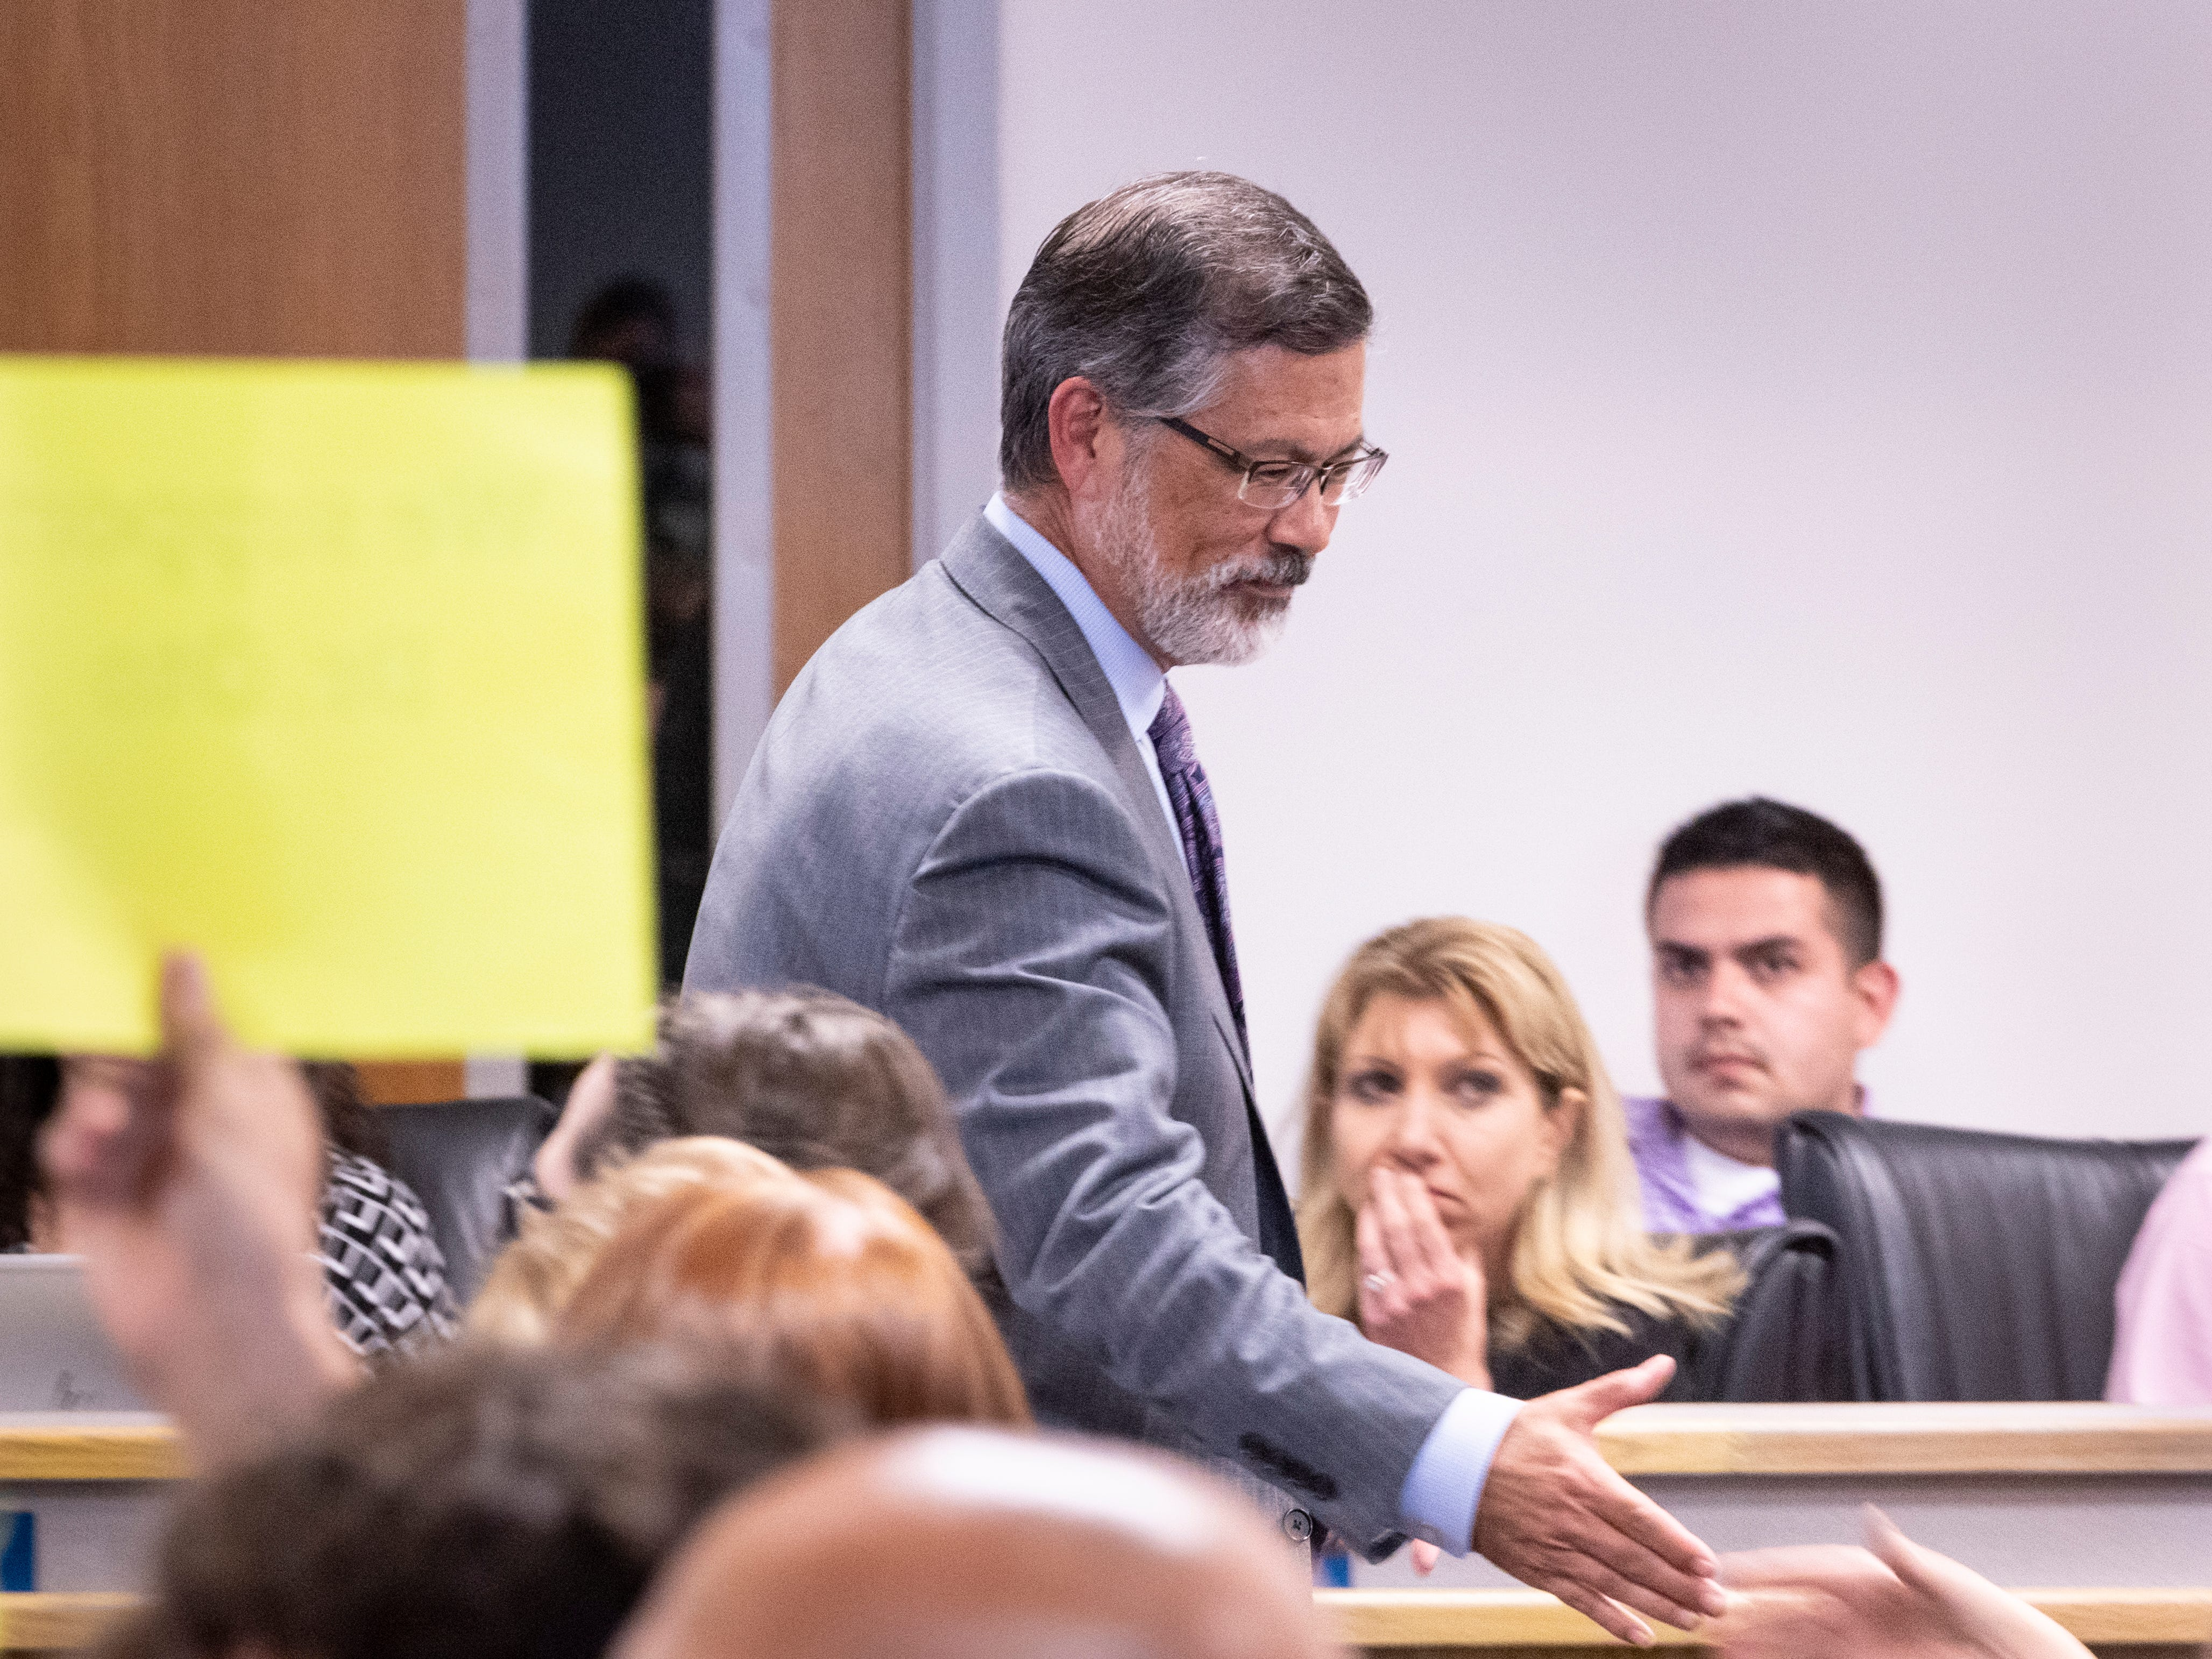 Superintendent Todd Oto shakes the hands of supporters during a special board meeting on Tuesday, May 7, 2019.